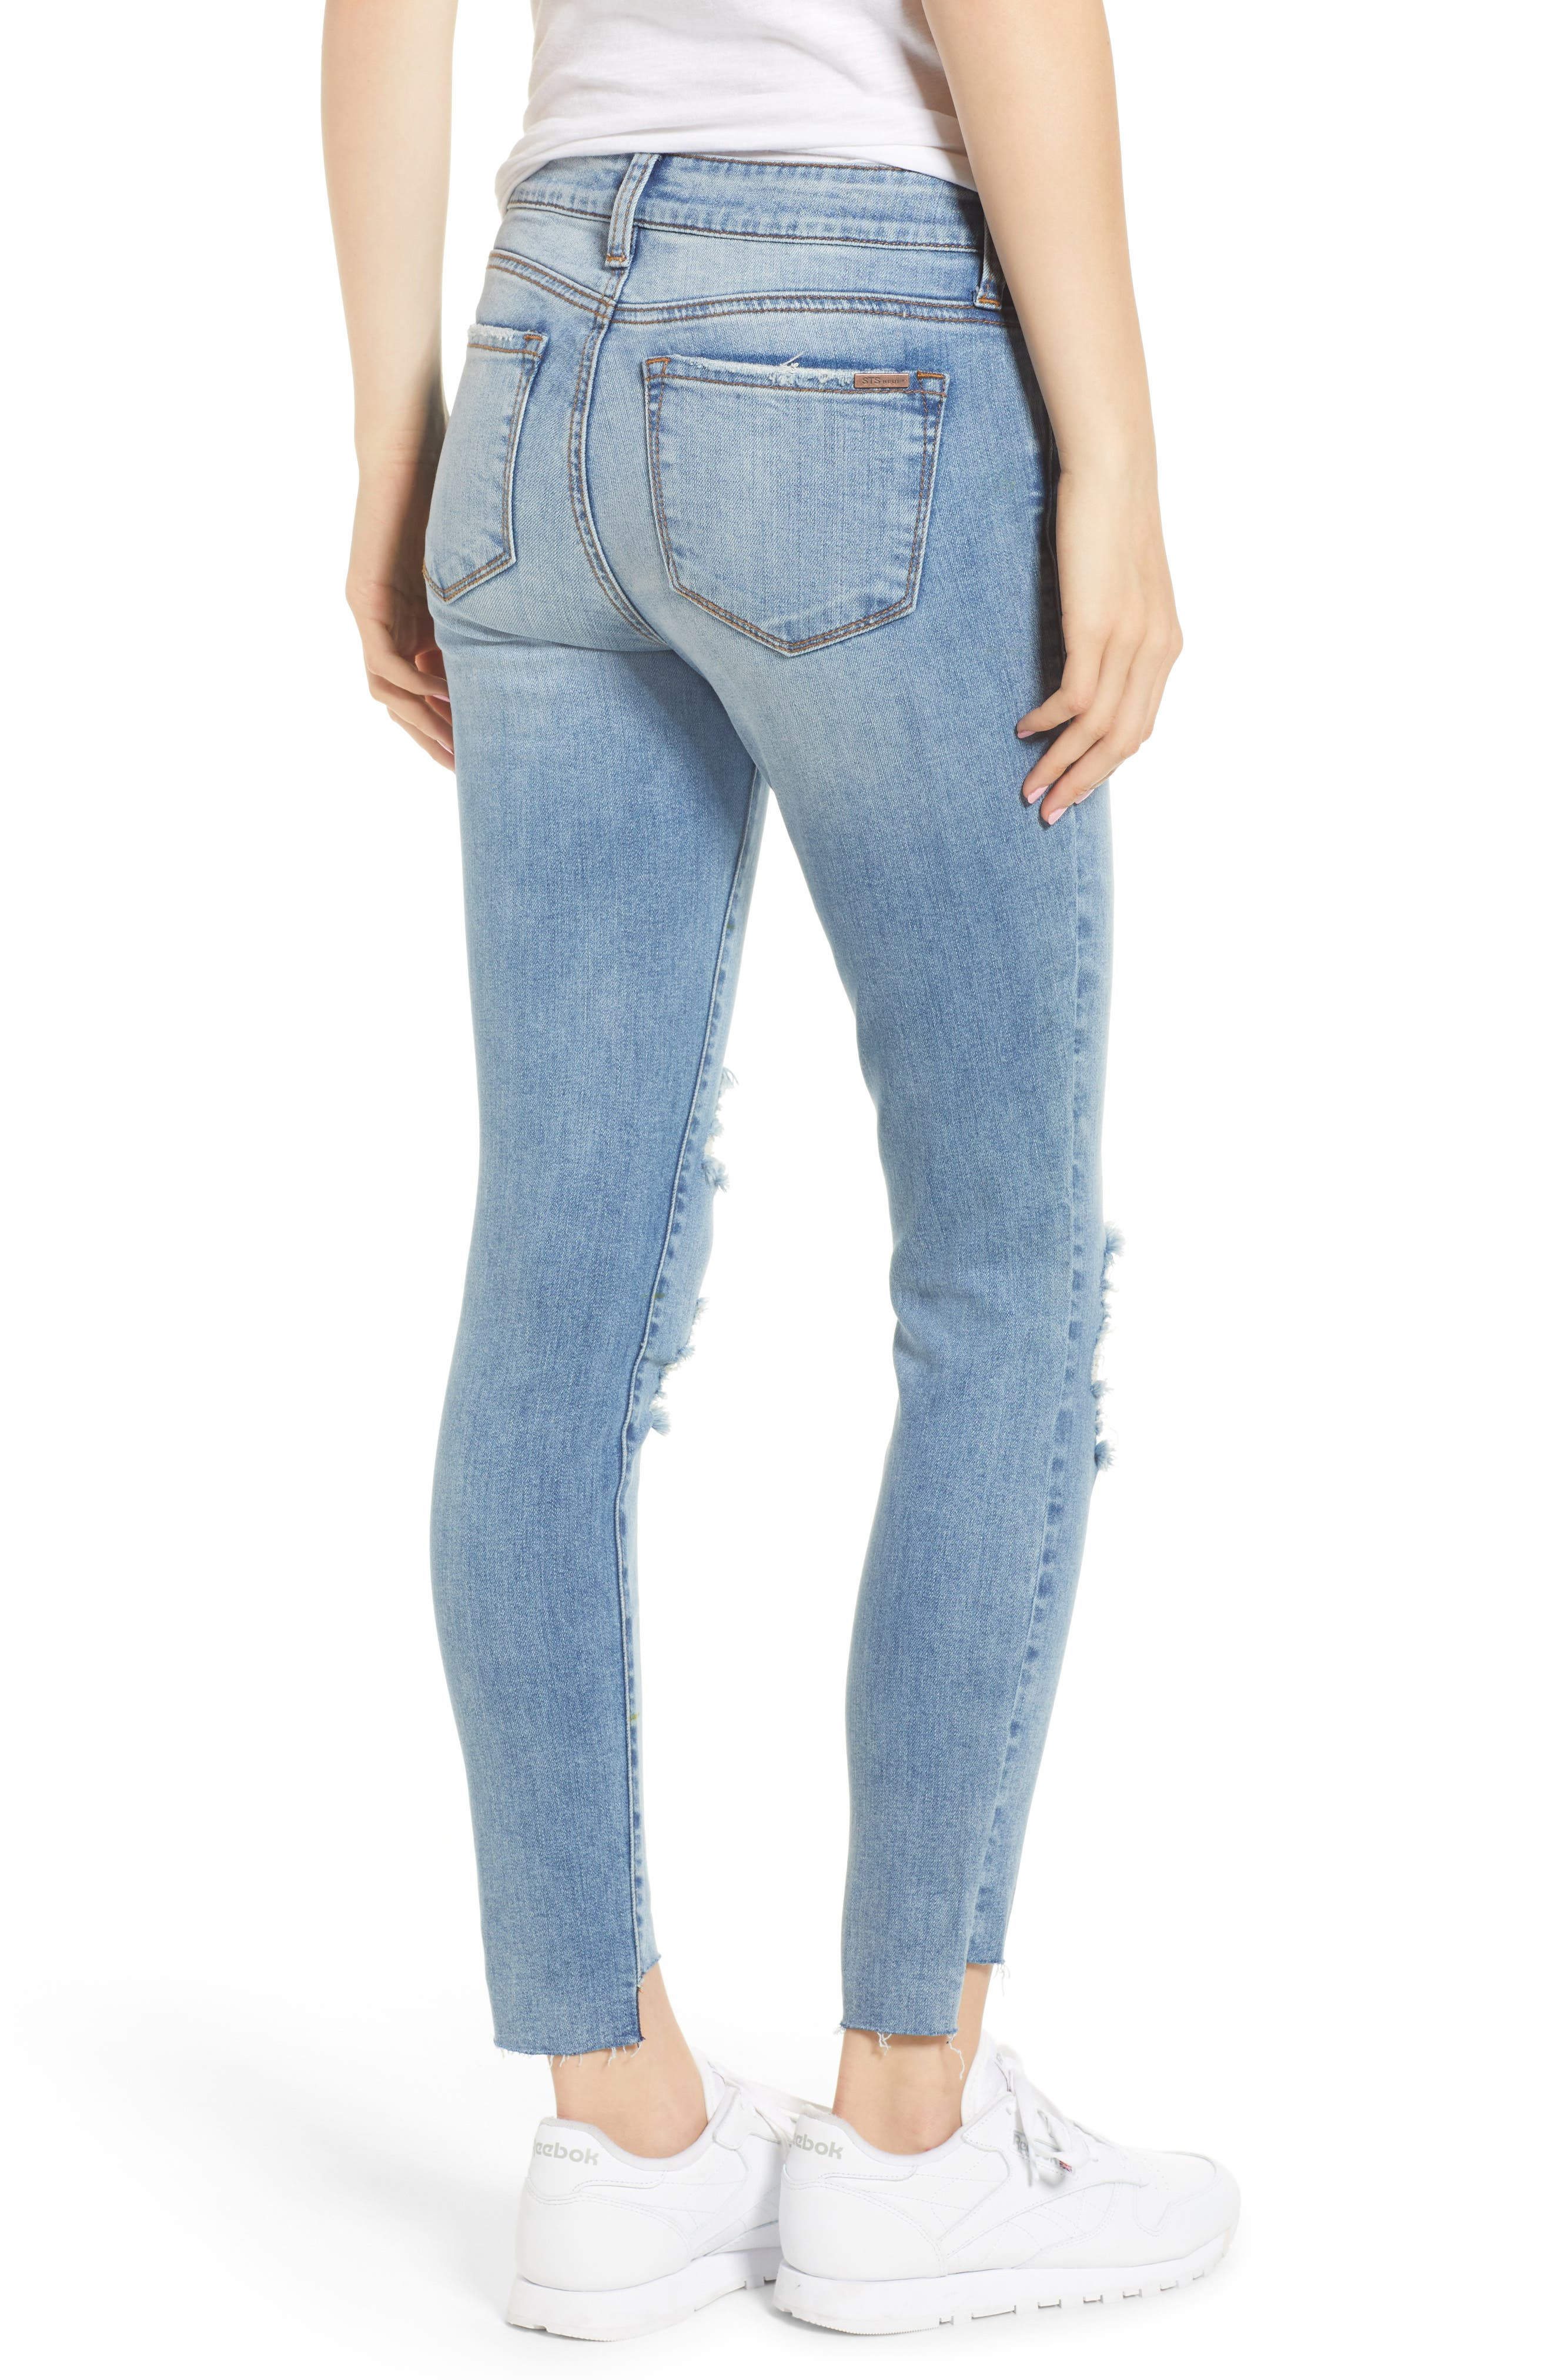 STS Blue Emma Ripped Ankle Skinny Jeans,                             Alternate thumbnail 2, color,                             Nortan W/ Lt Base